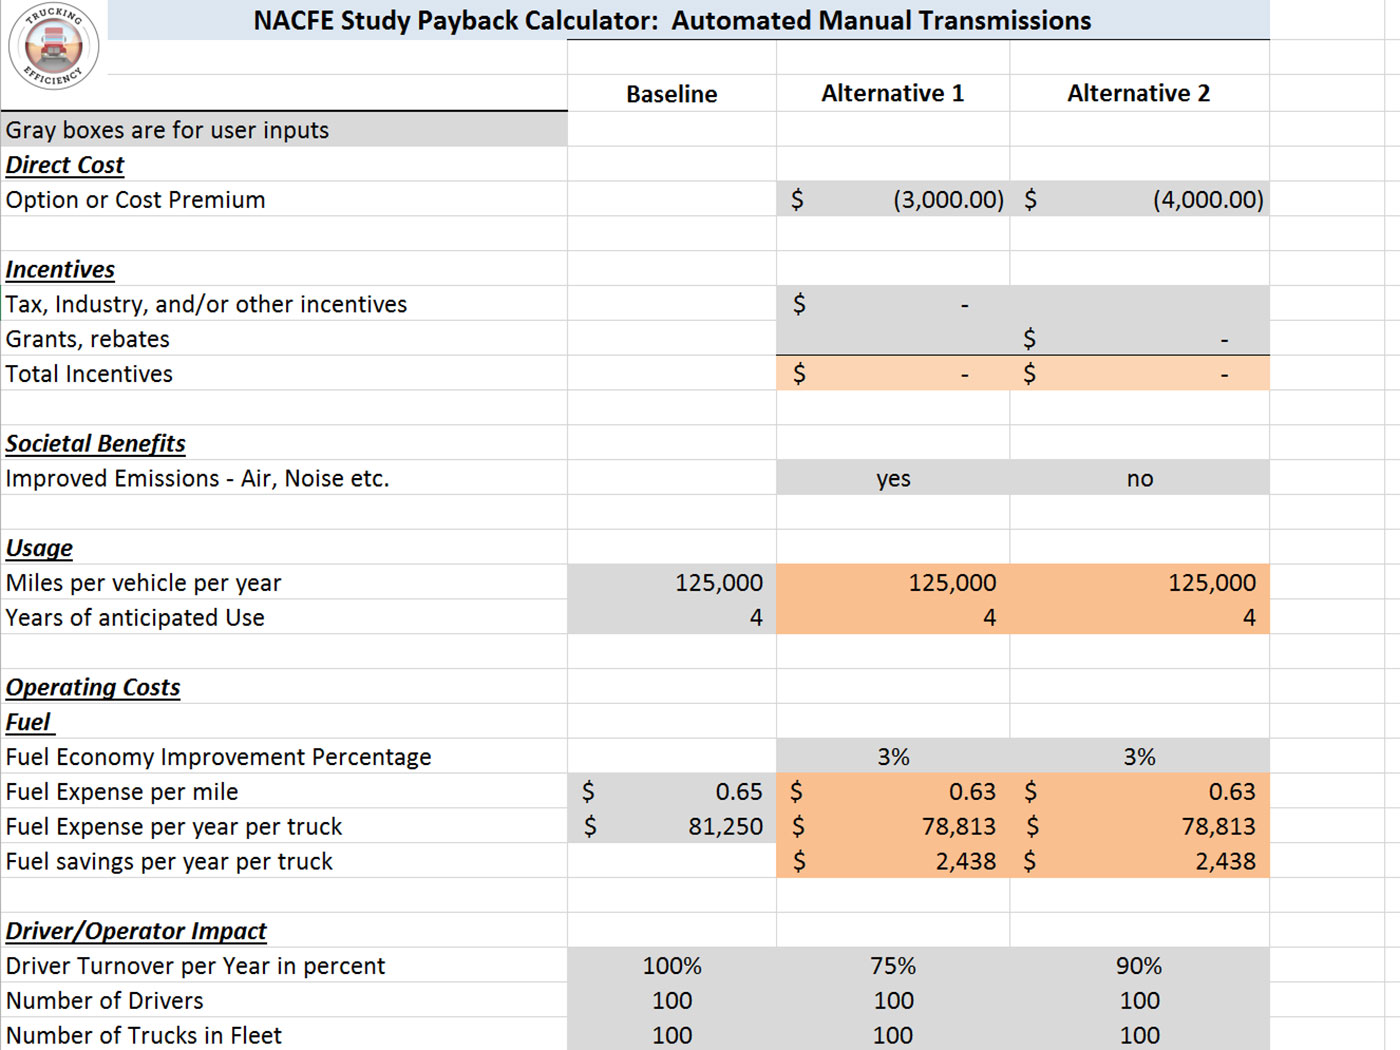 transmissions_payback_calculator